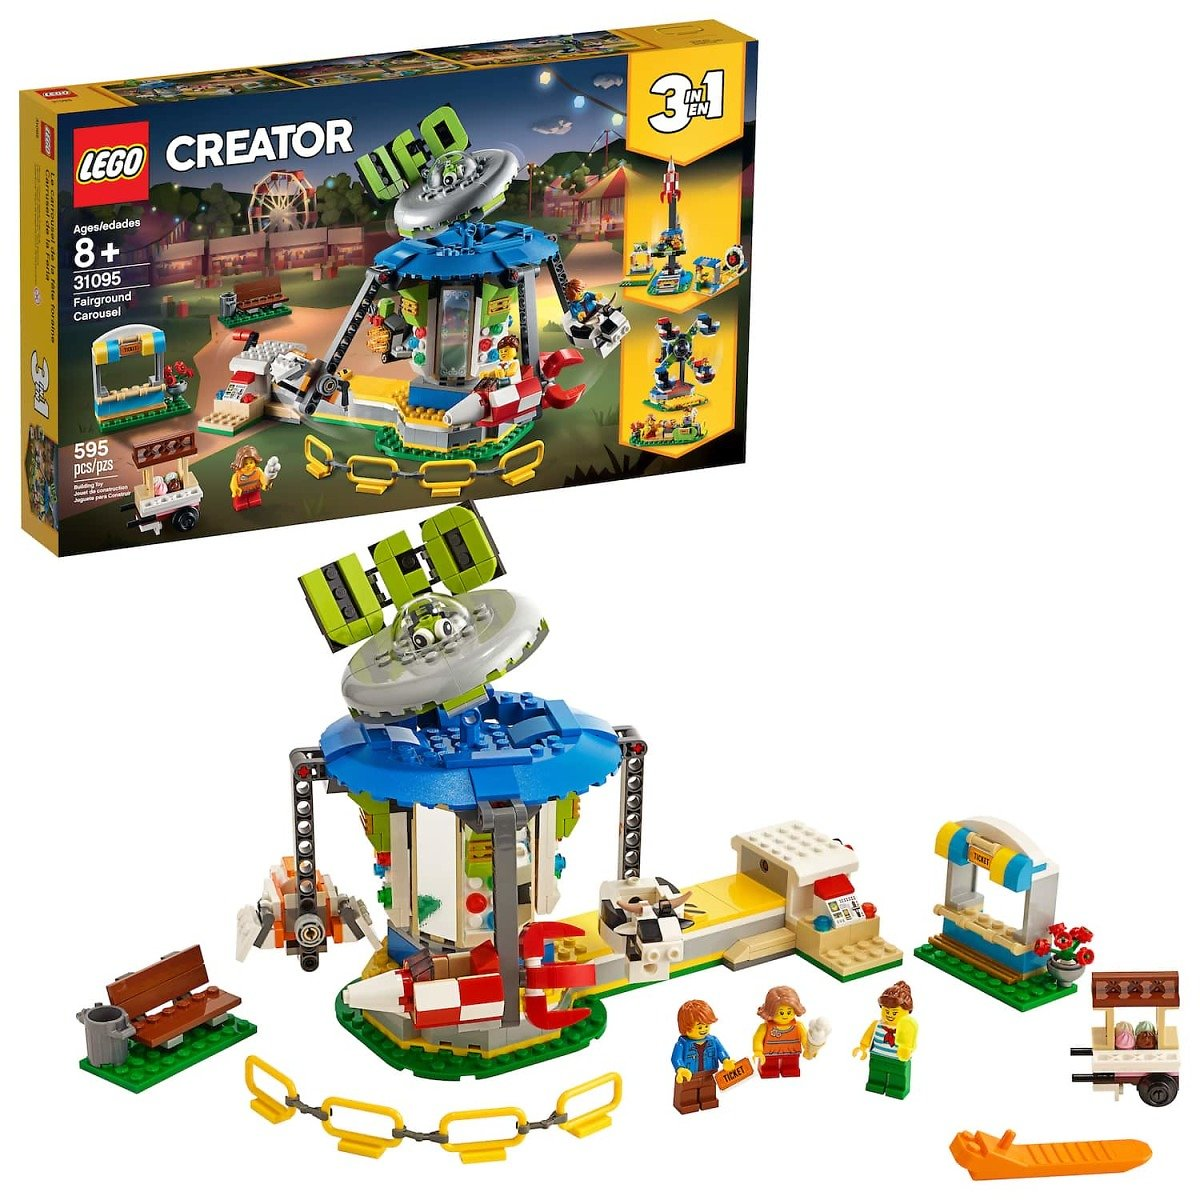 LEGO Creator Fairground Carousel  Space-Themed Building Kit (595 Pieces)